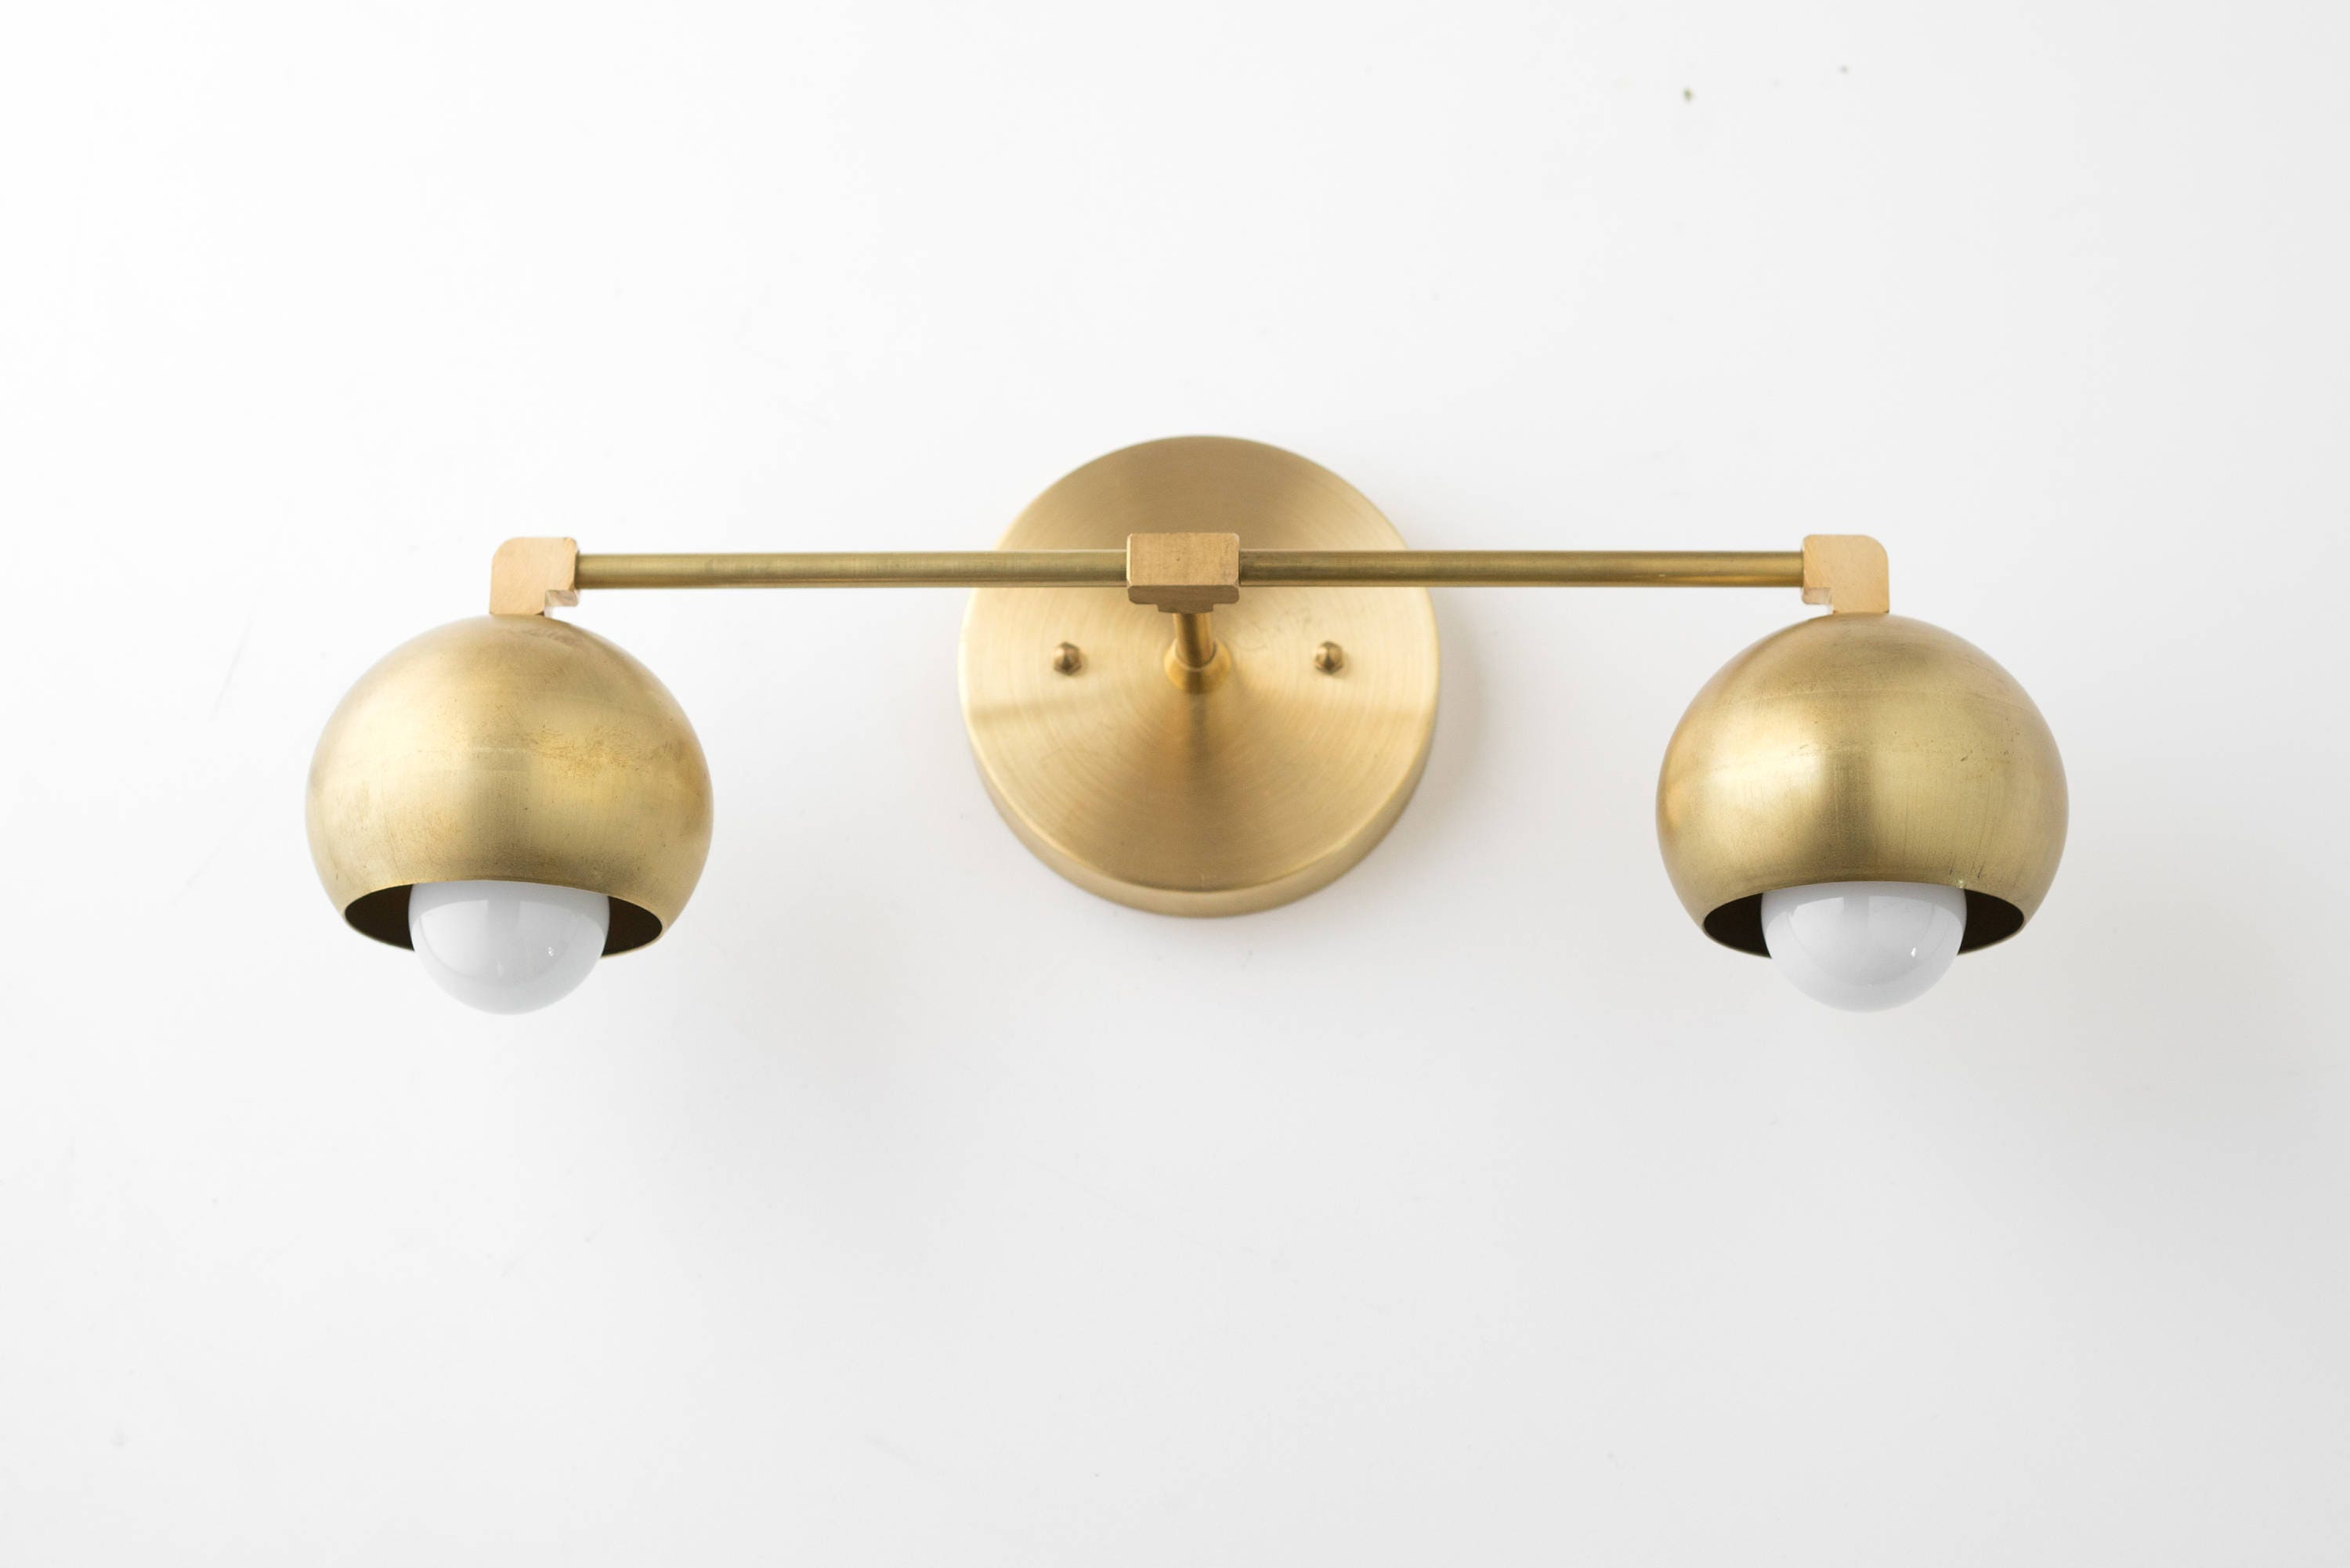 wall fullxfull bpjz abstract sconce il mid art gold light cone listed modern bathroom round covers vanity base downward ul century listing bulb brass